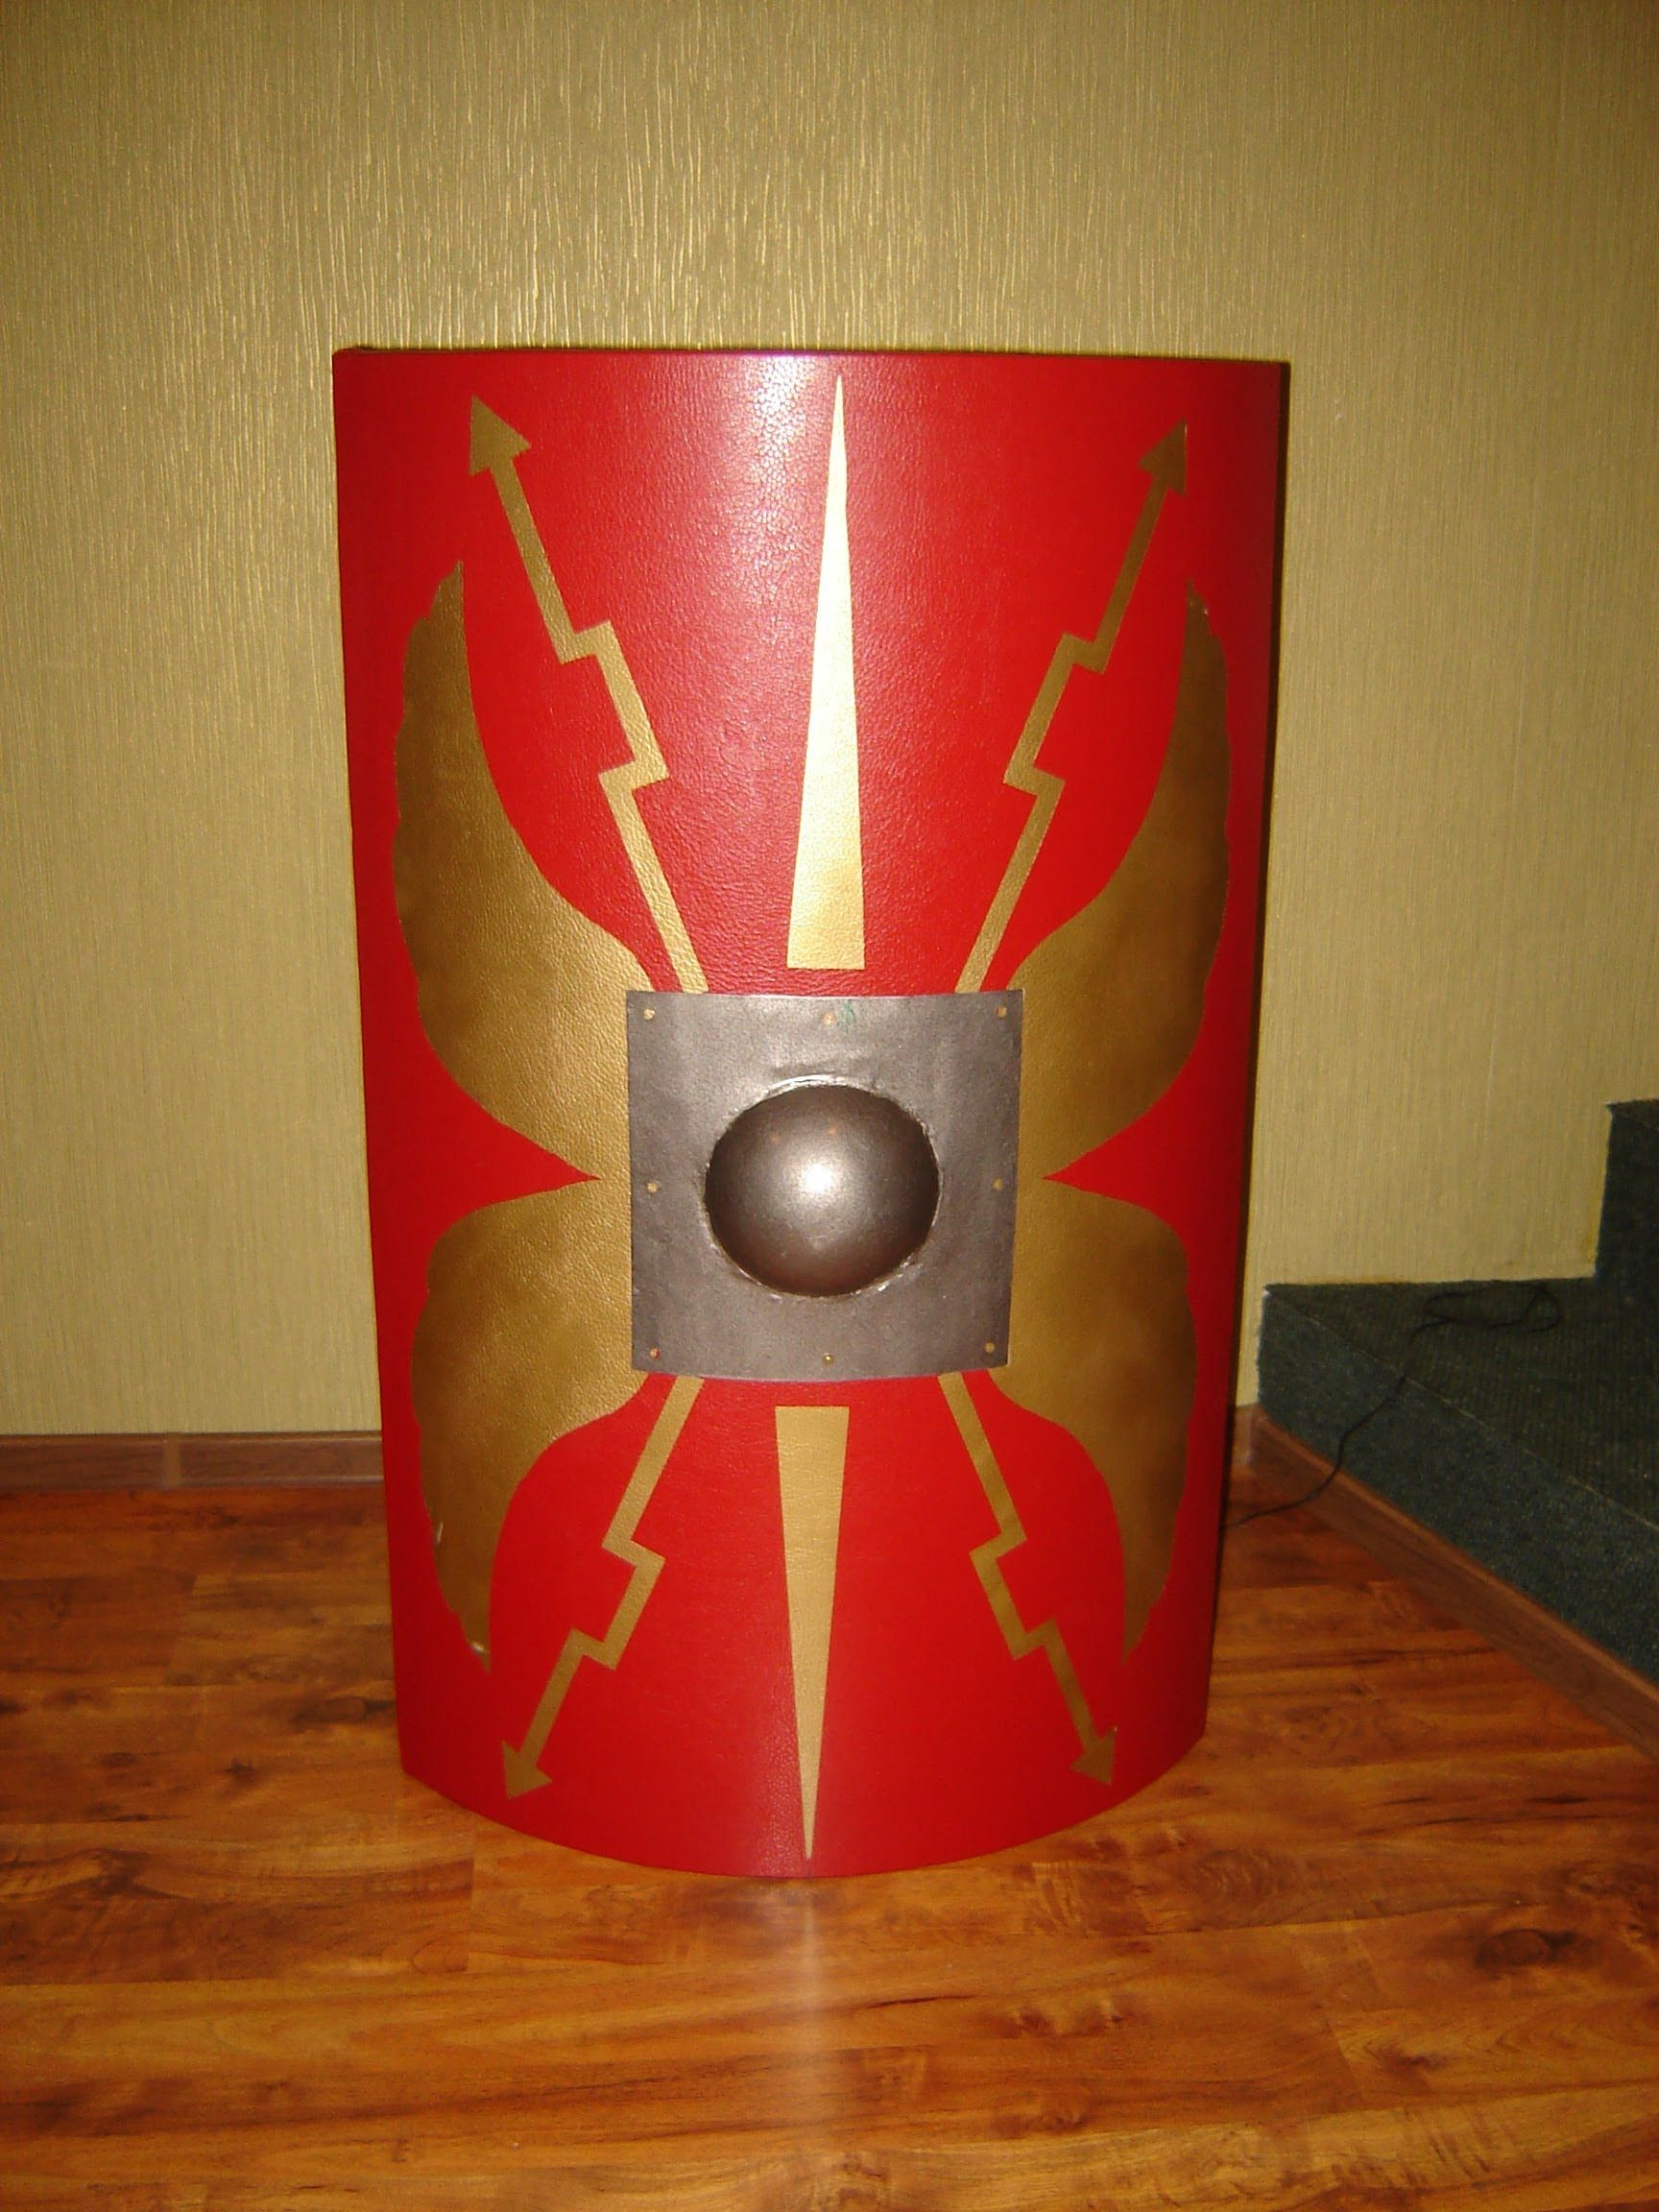 How to make a roman shield out of cardboard